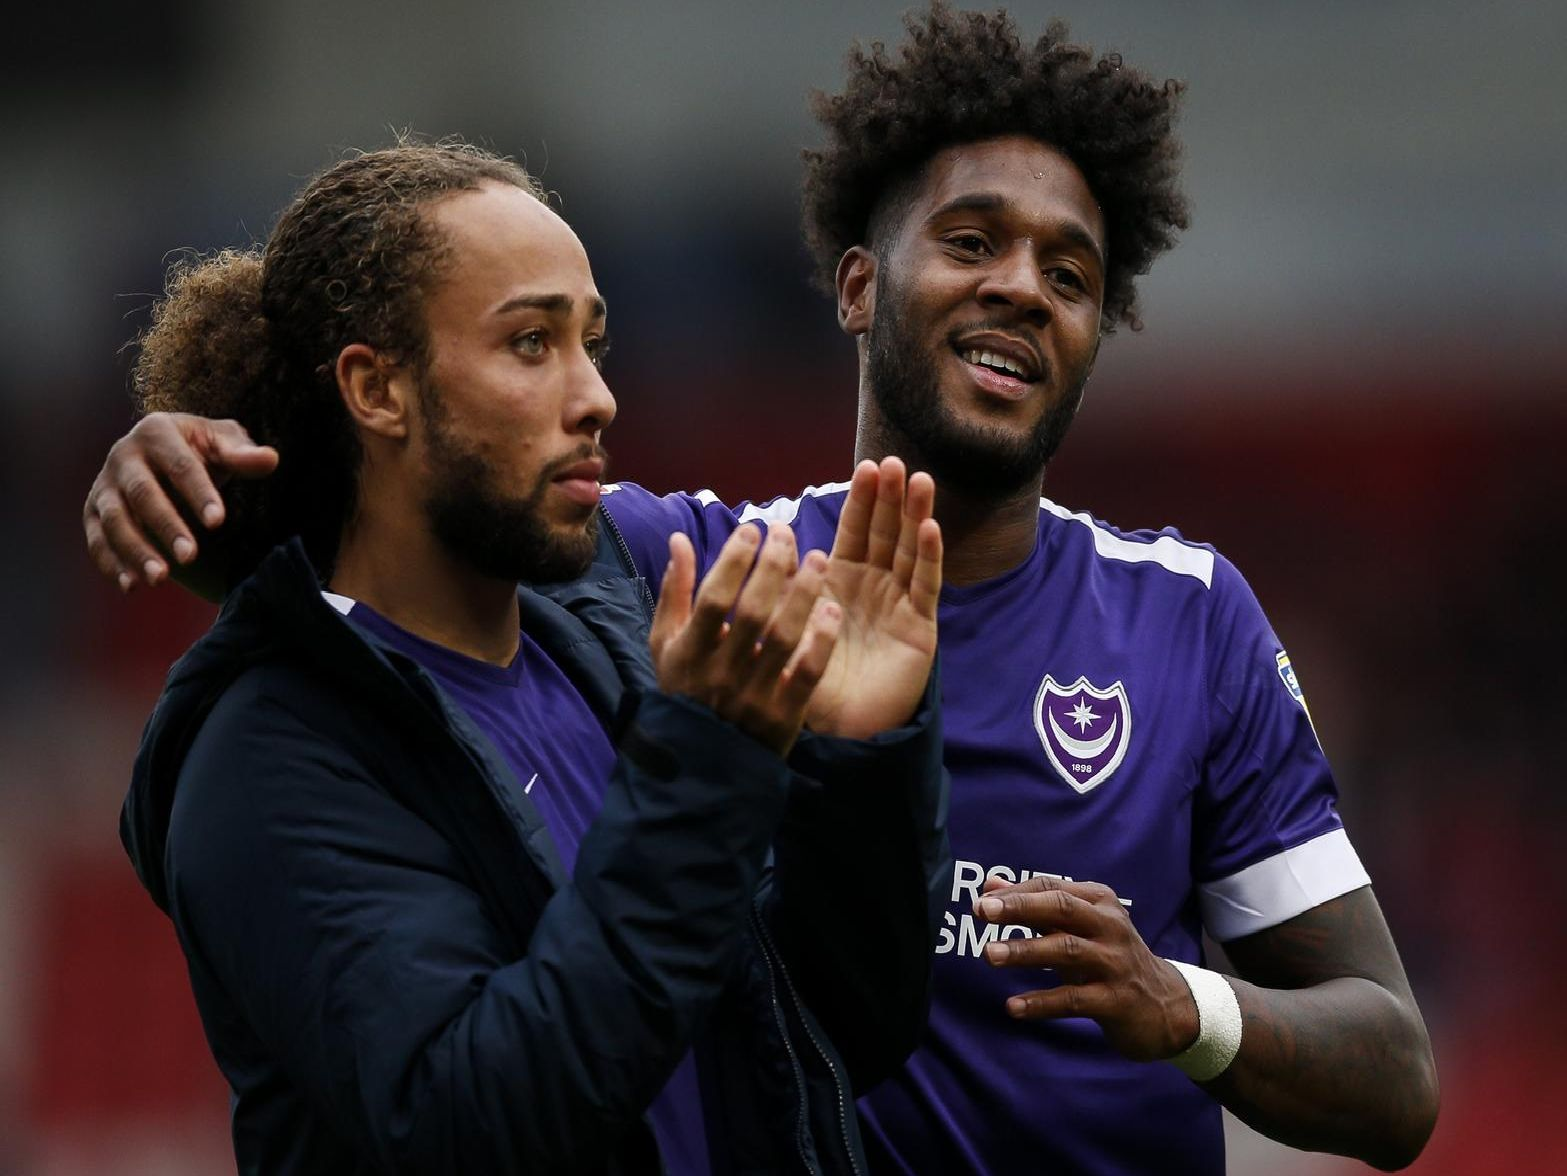 Ellis Harrison of Portsmouth celebrates with Marcus Harness of Portsmouth at full time of the Sky Bet League One match between Doncaster Rovers and Portsmouth at Keepmoat Stadium on October 5th 2019 in Doncaster, England. (Photo by Daniel Chesterton/PinPep)